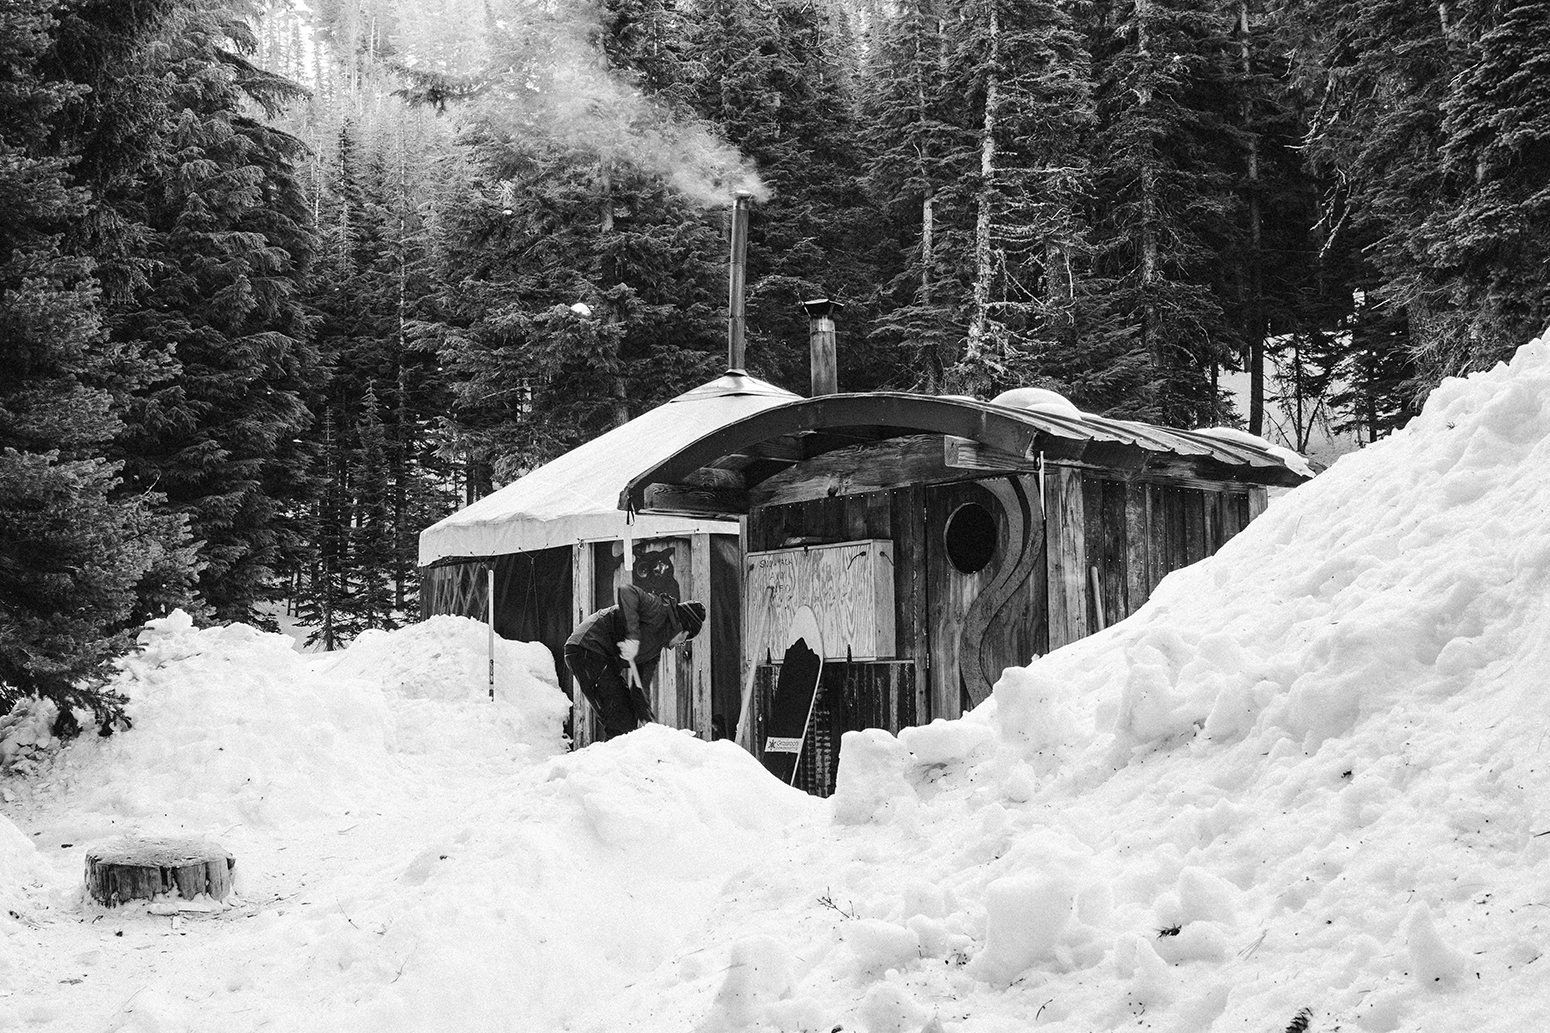 Person in snow in front of yurt